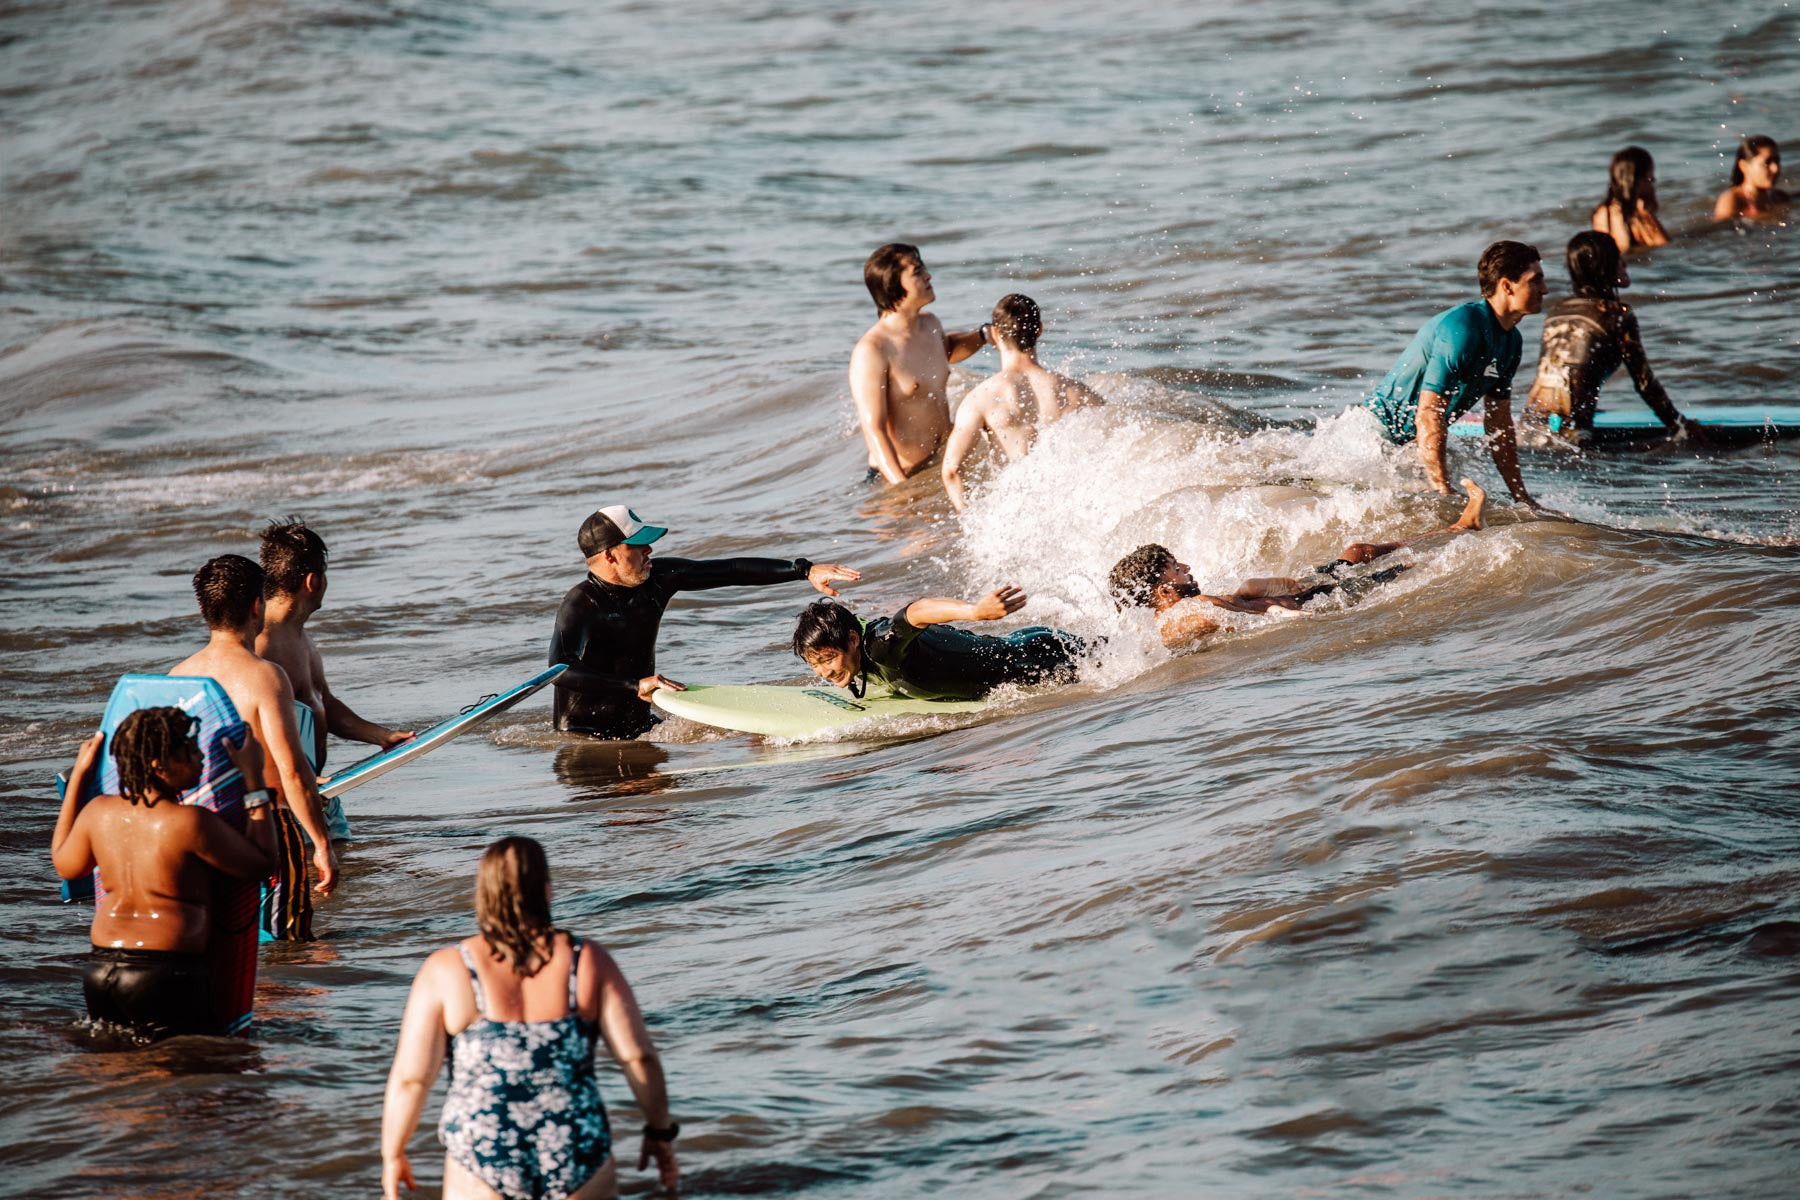 ISA Surfer's Rescue and Safety Course Kincardine